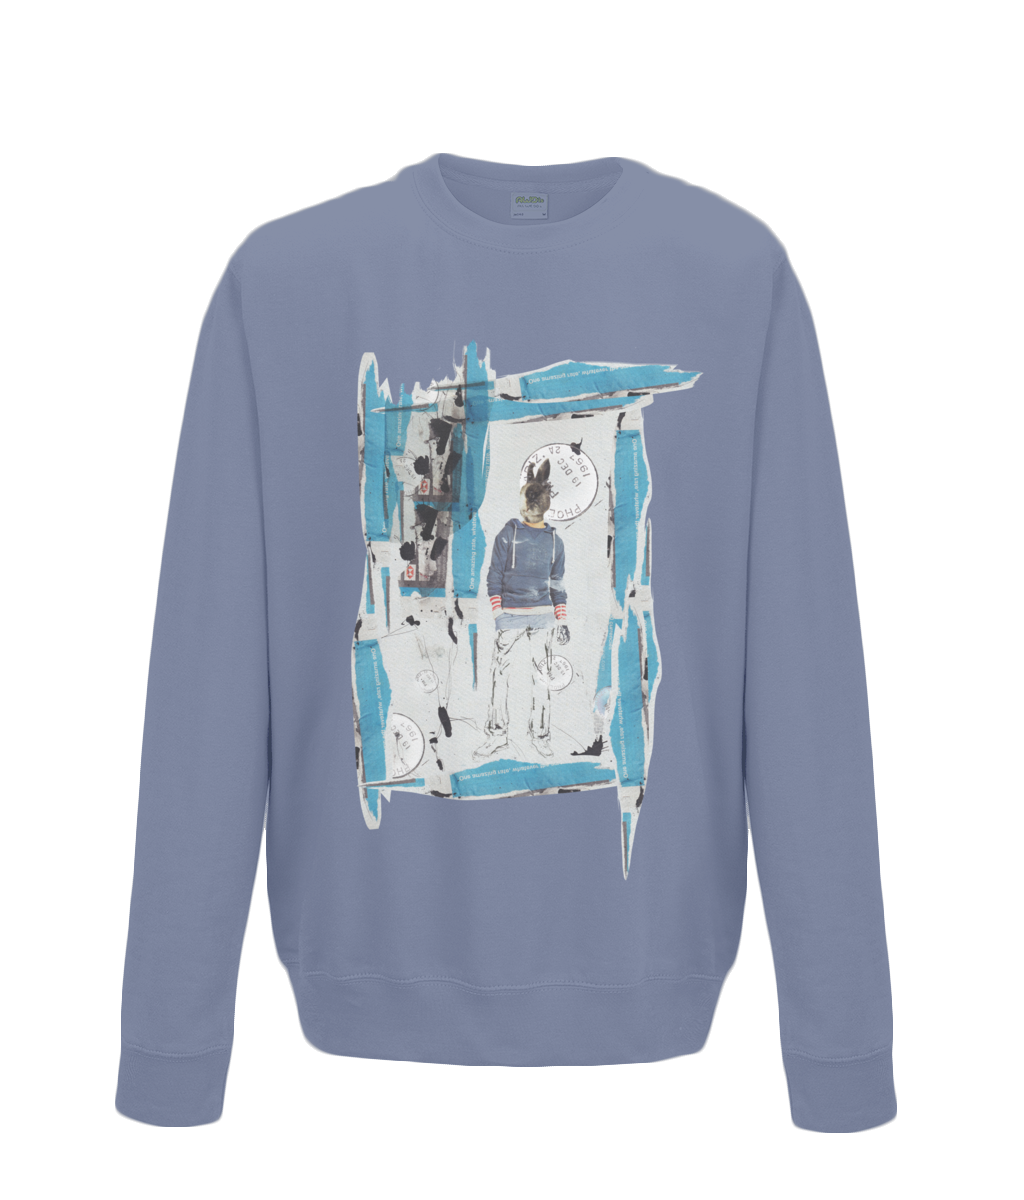 AWDis Sweatshirt rabiit collage - sleekitstore